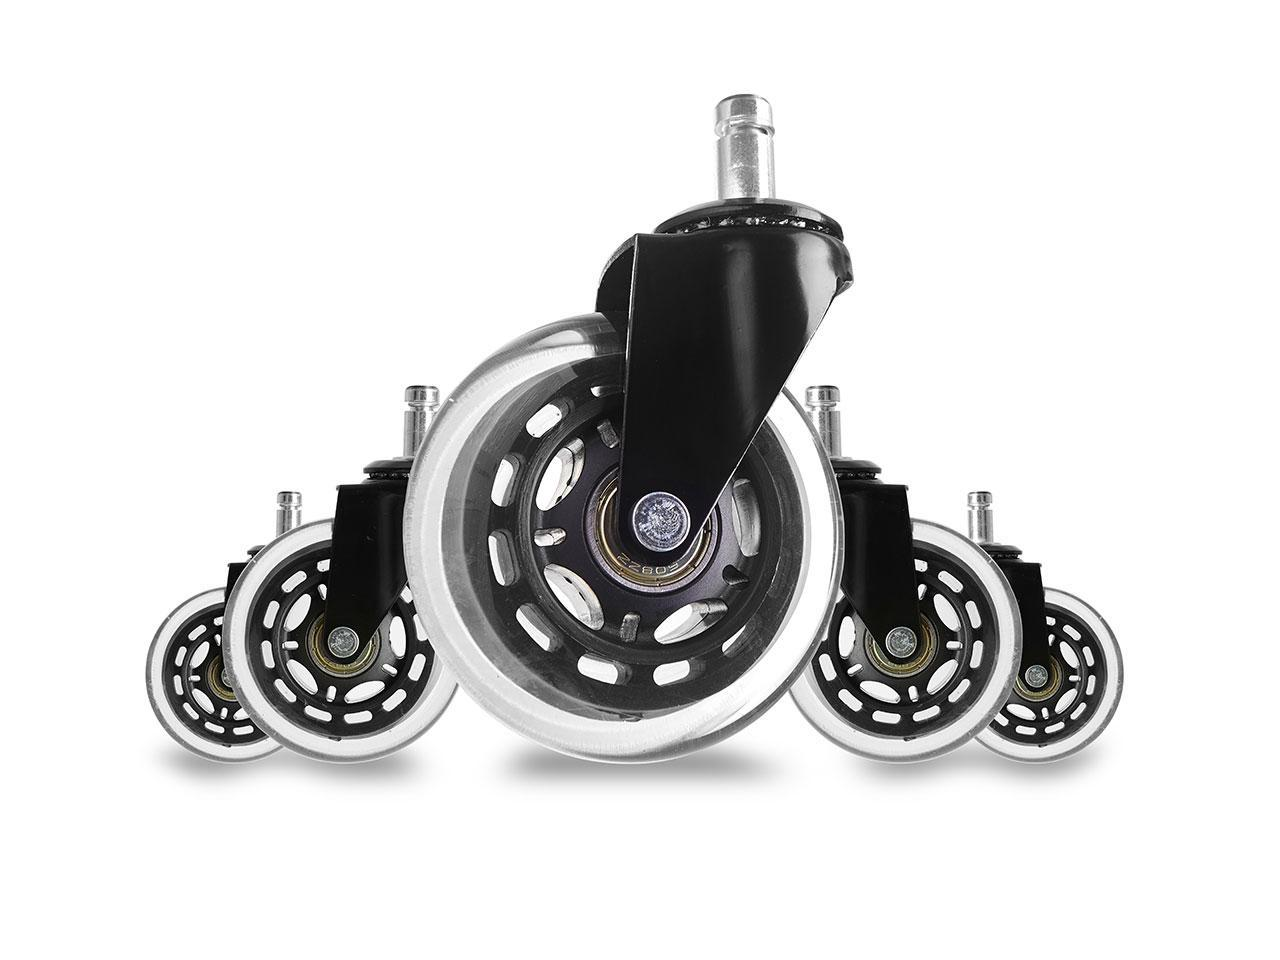 Heavy Duty /& Floor Safe Office Chair Wheels fit Gaming Computer Desk Chairs 5 Pack Office Chair Caster Wheels Replacement Rubber Caster